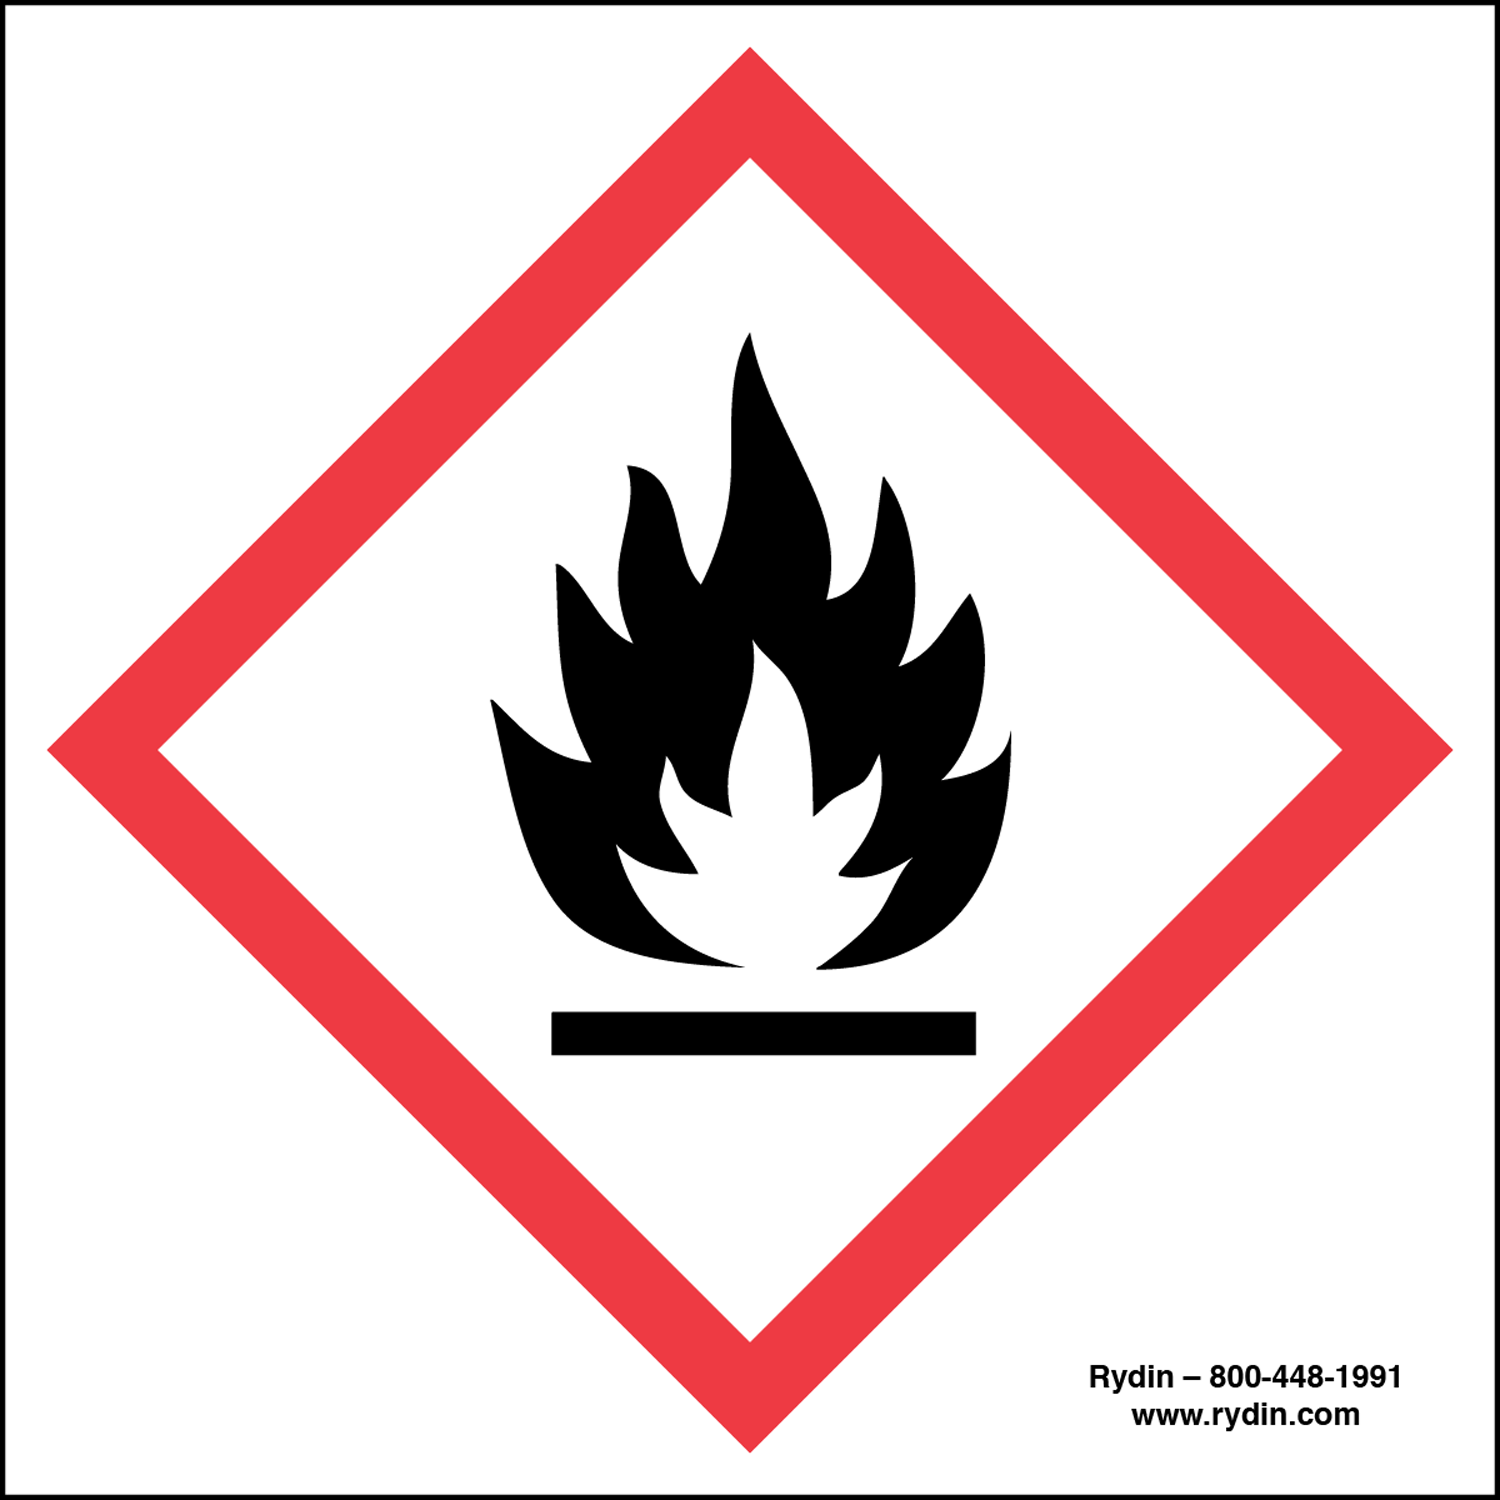 Emergency/ Caution Decals